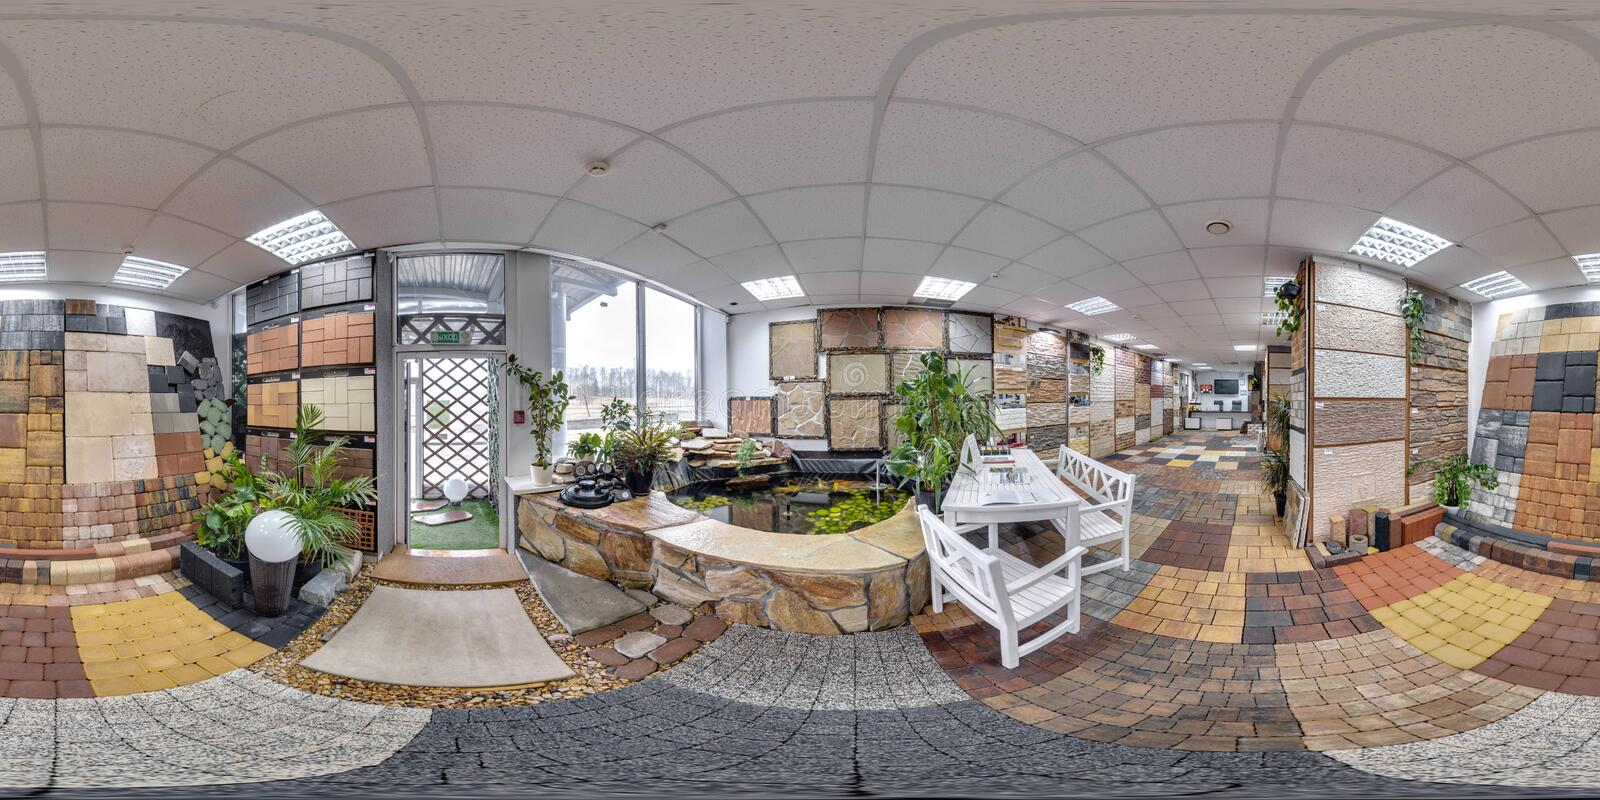 Moscow-2018: 3D spherical panorama with 360 degree viewing angle of the hardware store interior with paving slab and decorative ti. Les. Full equirectangular stock image